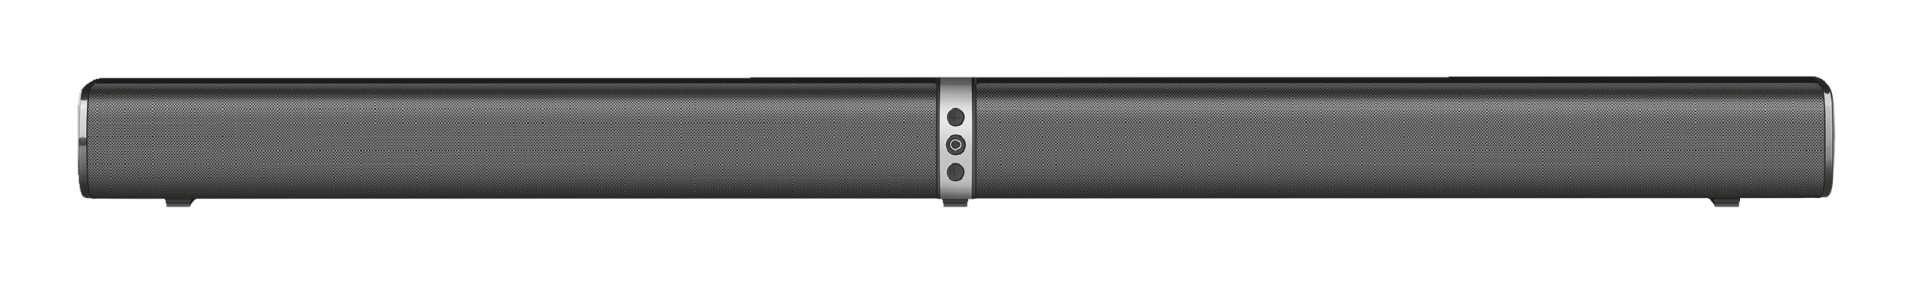 Lino XL 2.1 Detachable All-round Soundbar with subwoofer with Bluetooth-Front